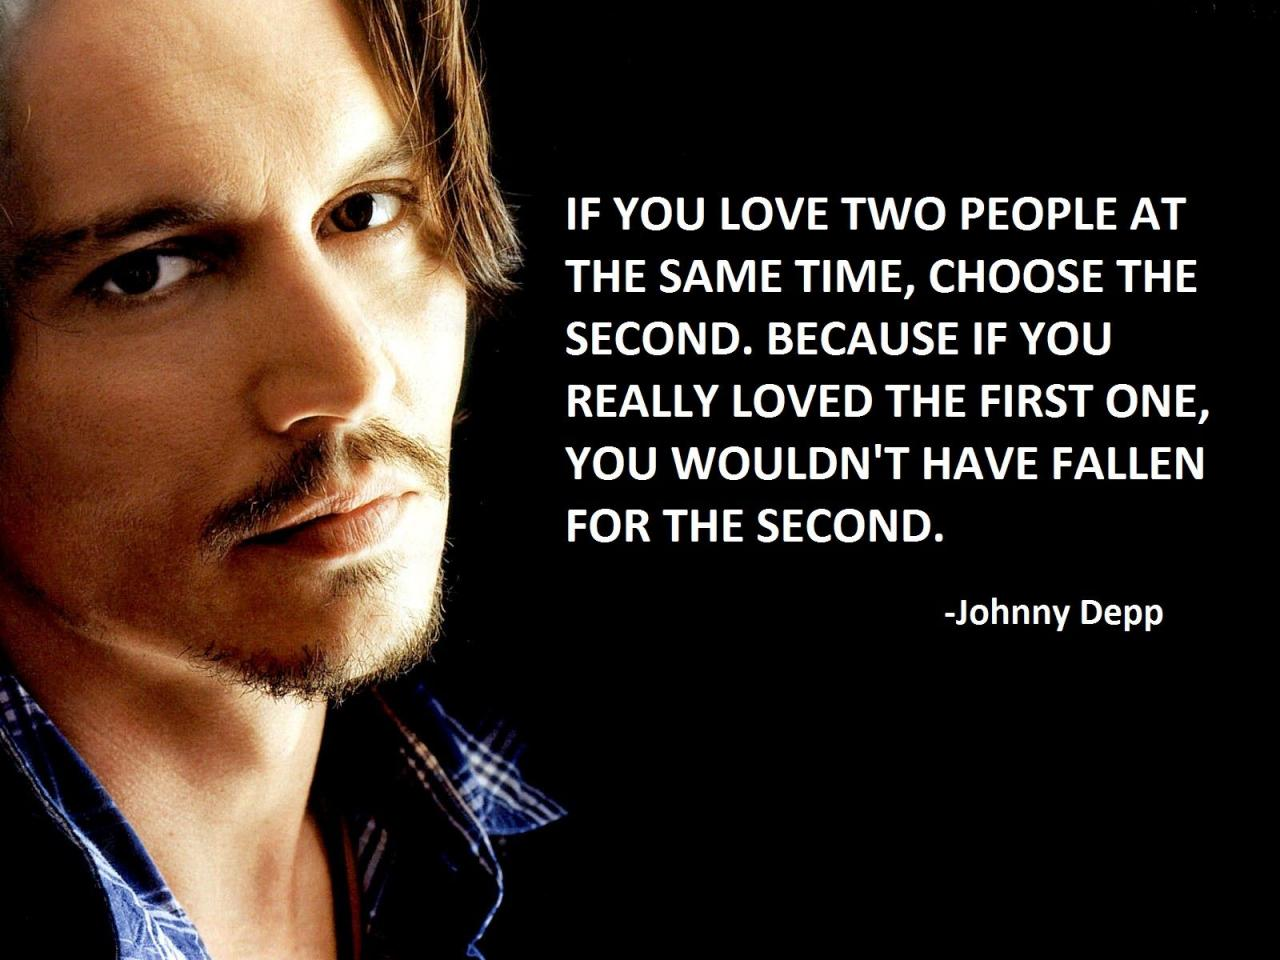 Pirates Of The Caribbean Quotes Johnny Depp Quotes From Pirates Of The Caribbean